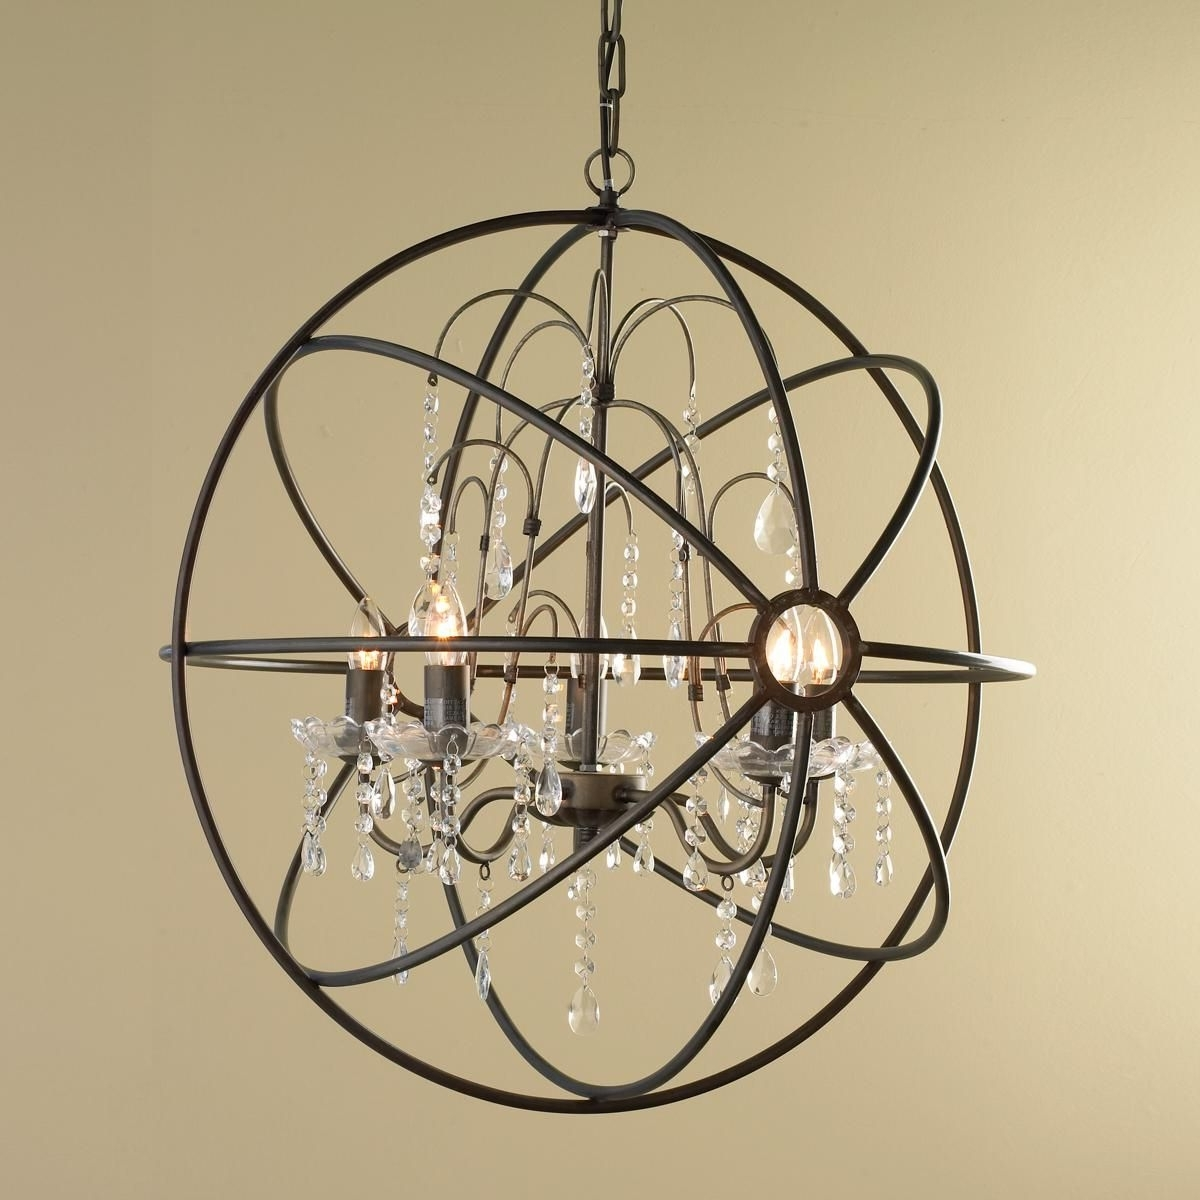 Crystal And Metal Orb Chandelier (View 3 of 20)